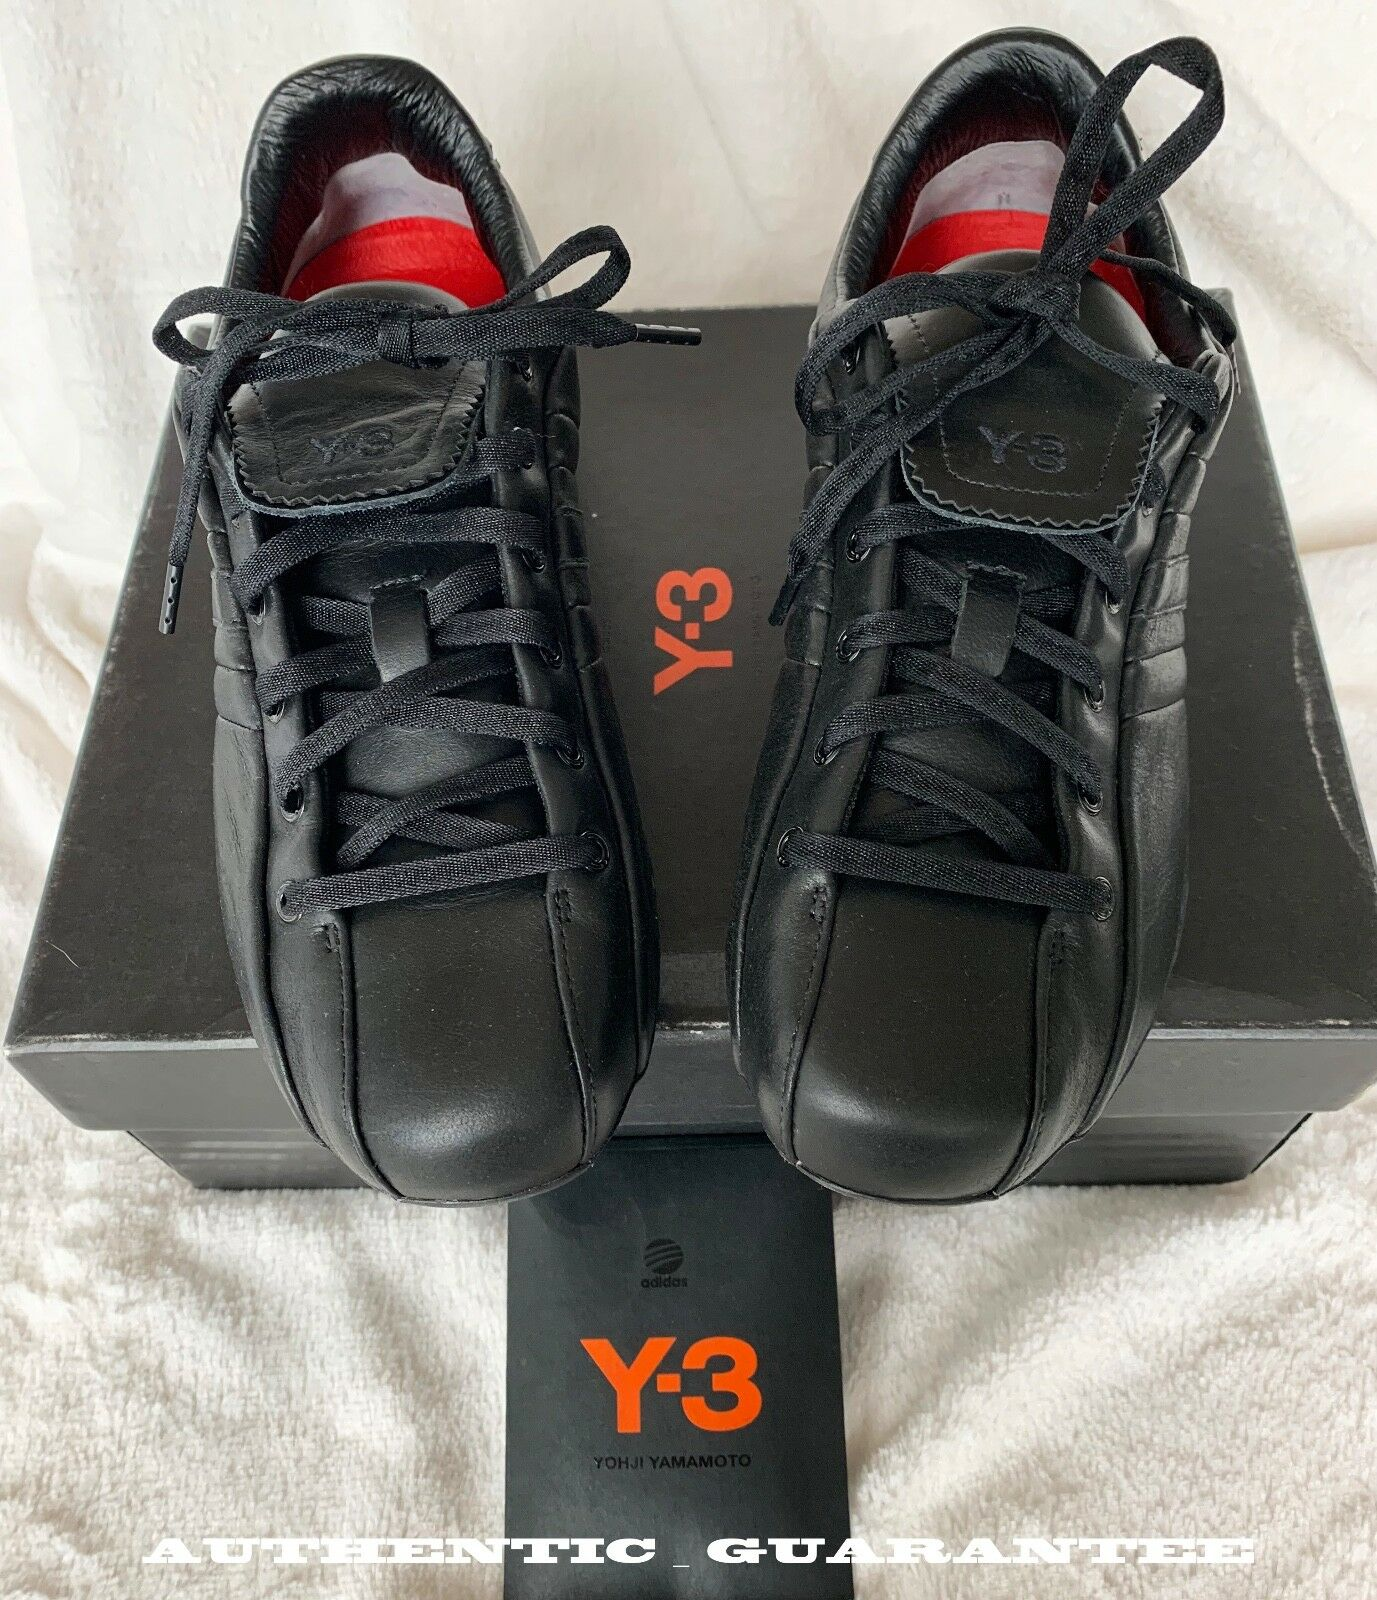 AUTHENTIC Y-3 ADIDAS X YOHJI YAMAMOTO Black Leather SNEAKERS Sz 5.5 NEW in BOX